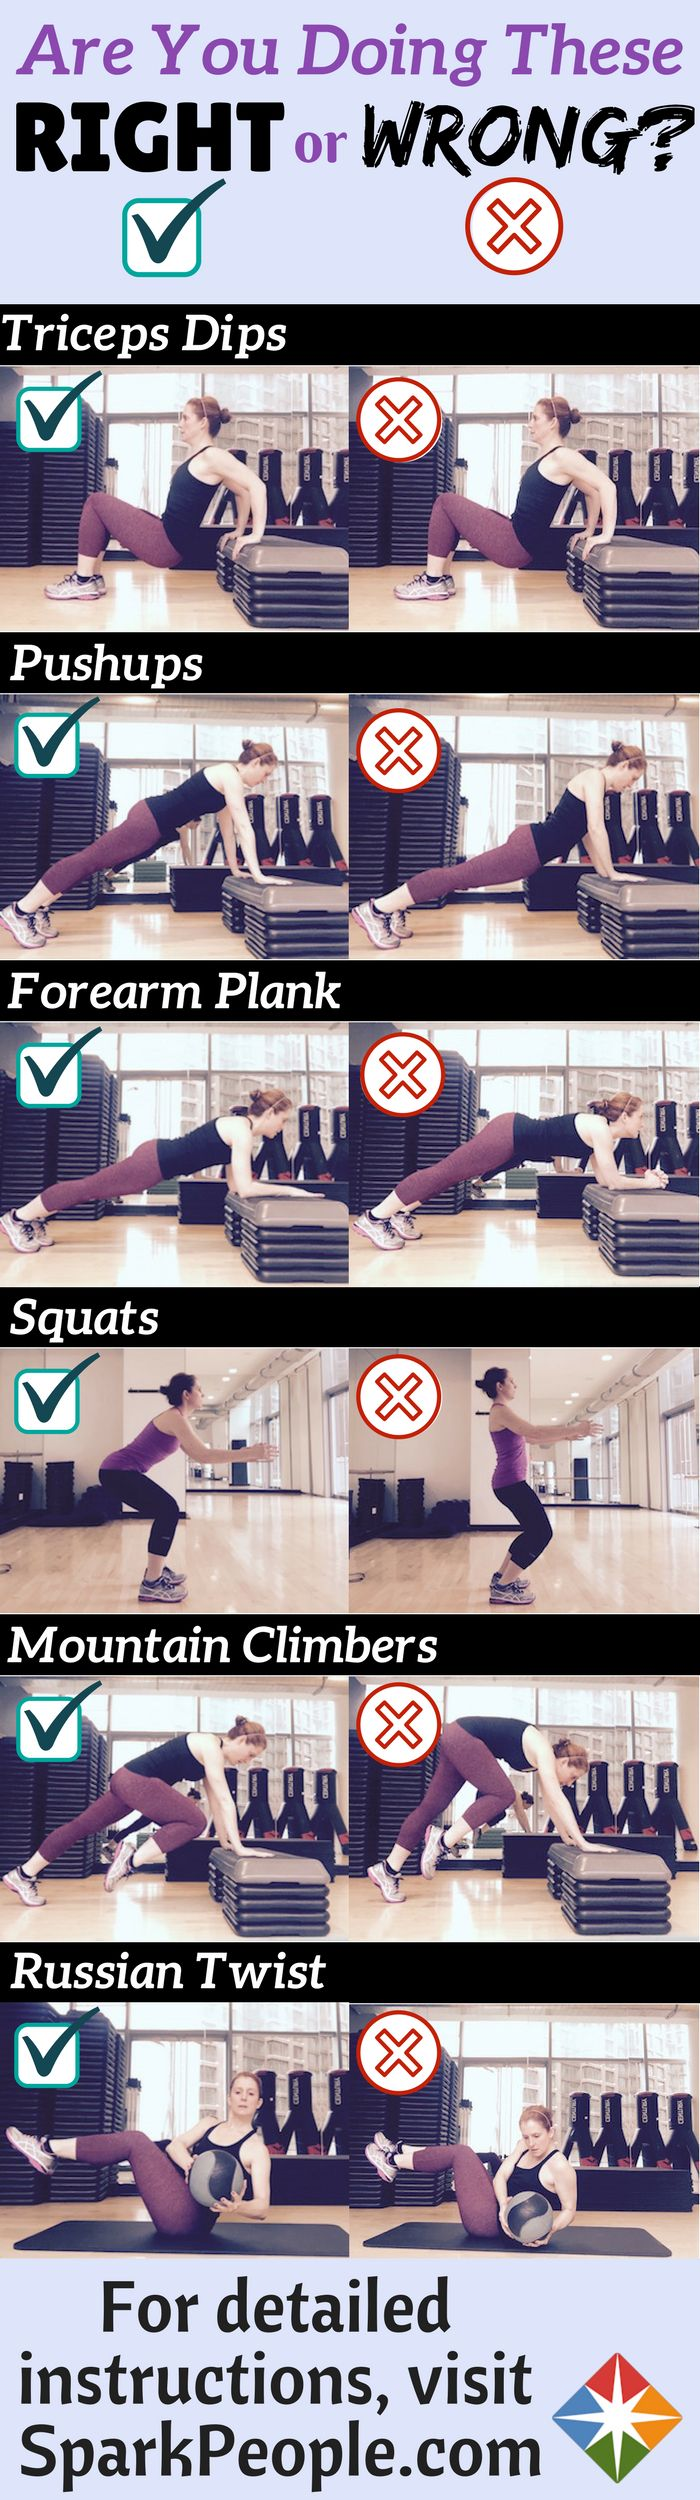 """Am I doing this right?"" If you find yourself asking that question during your workout, check out this handy guide to proper fitness form!"